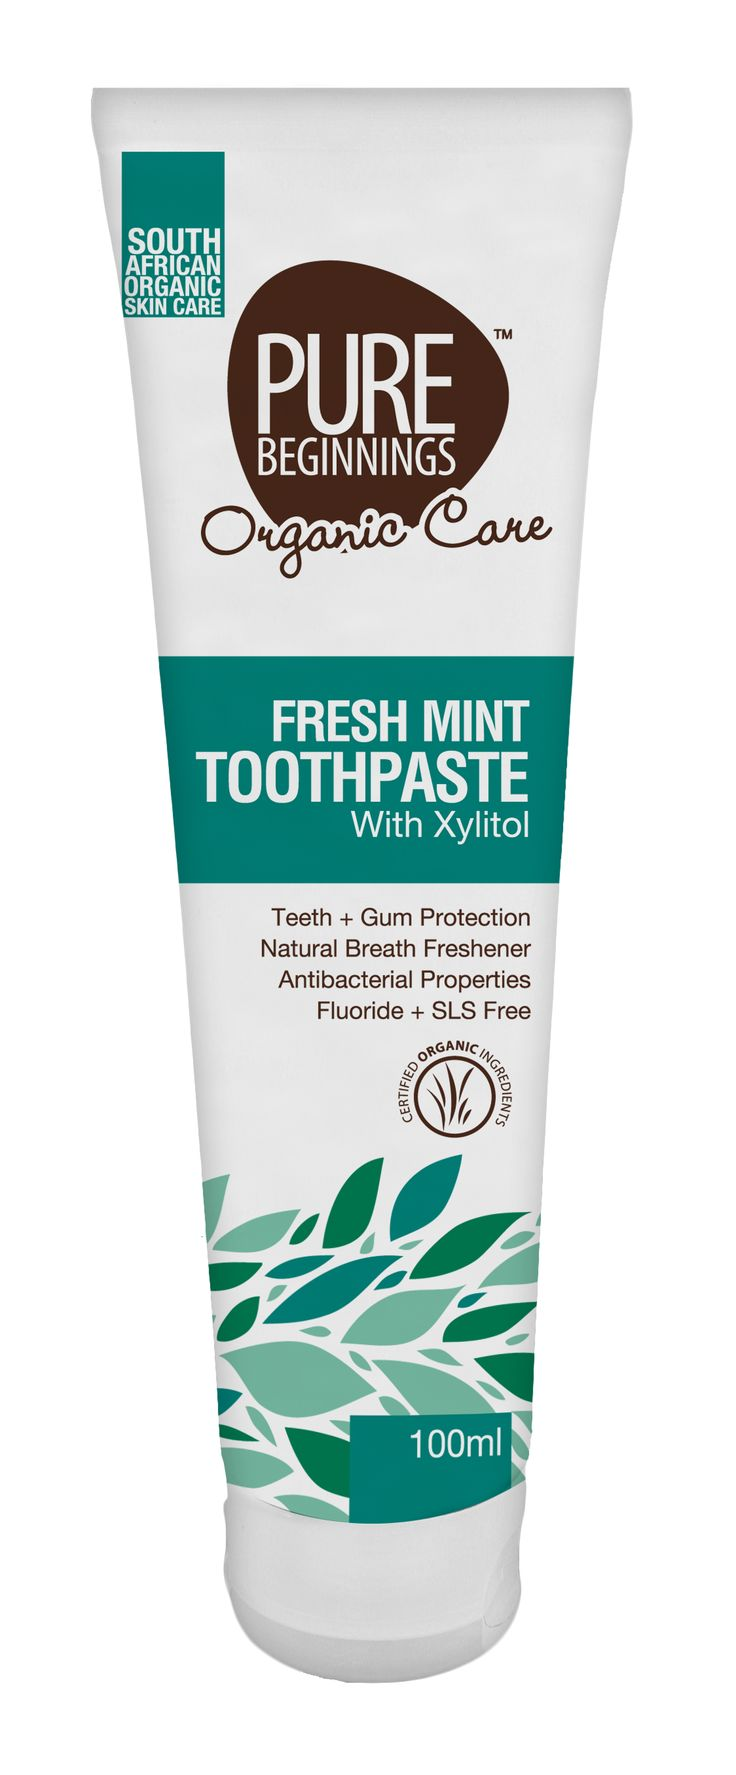 100ml FRESH MINT TOOTHPASTE -  with Xylitol (100ml)   **This fluoride free mint toothpaste contains xylitol, which has been shown to effectively inhibit the growth of bacteria that cause tooth decay